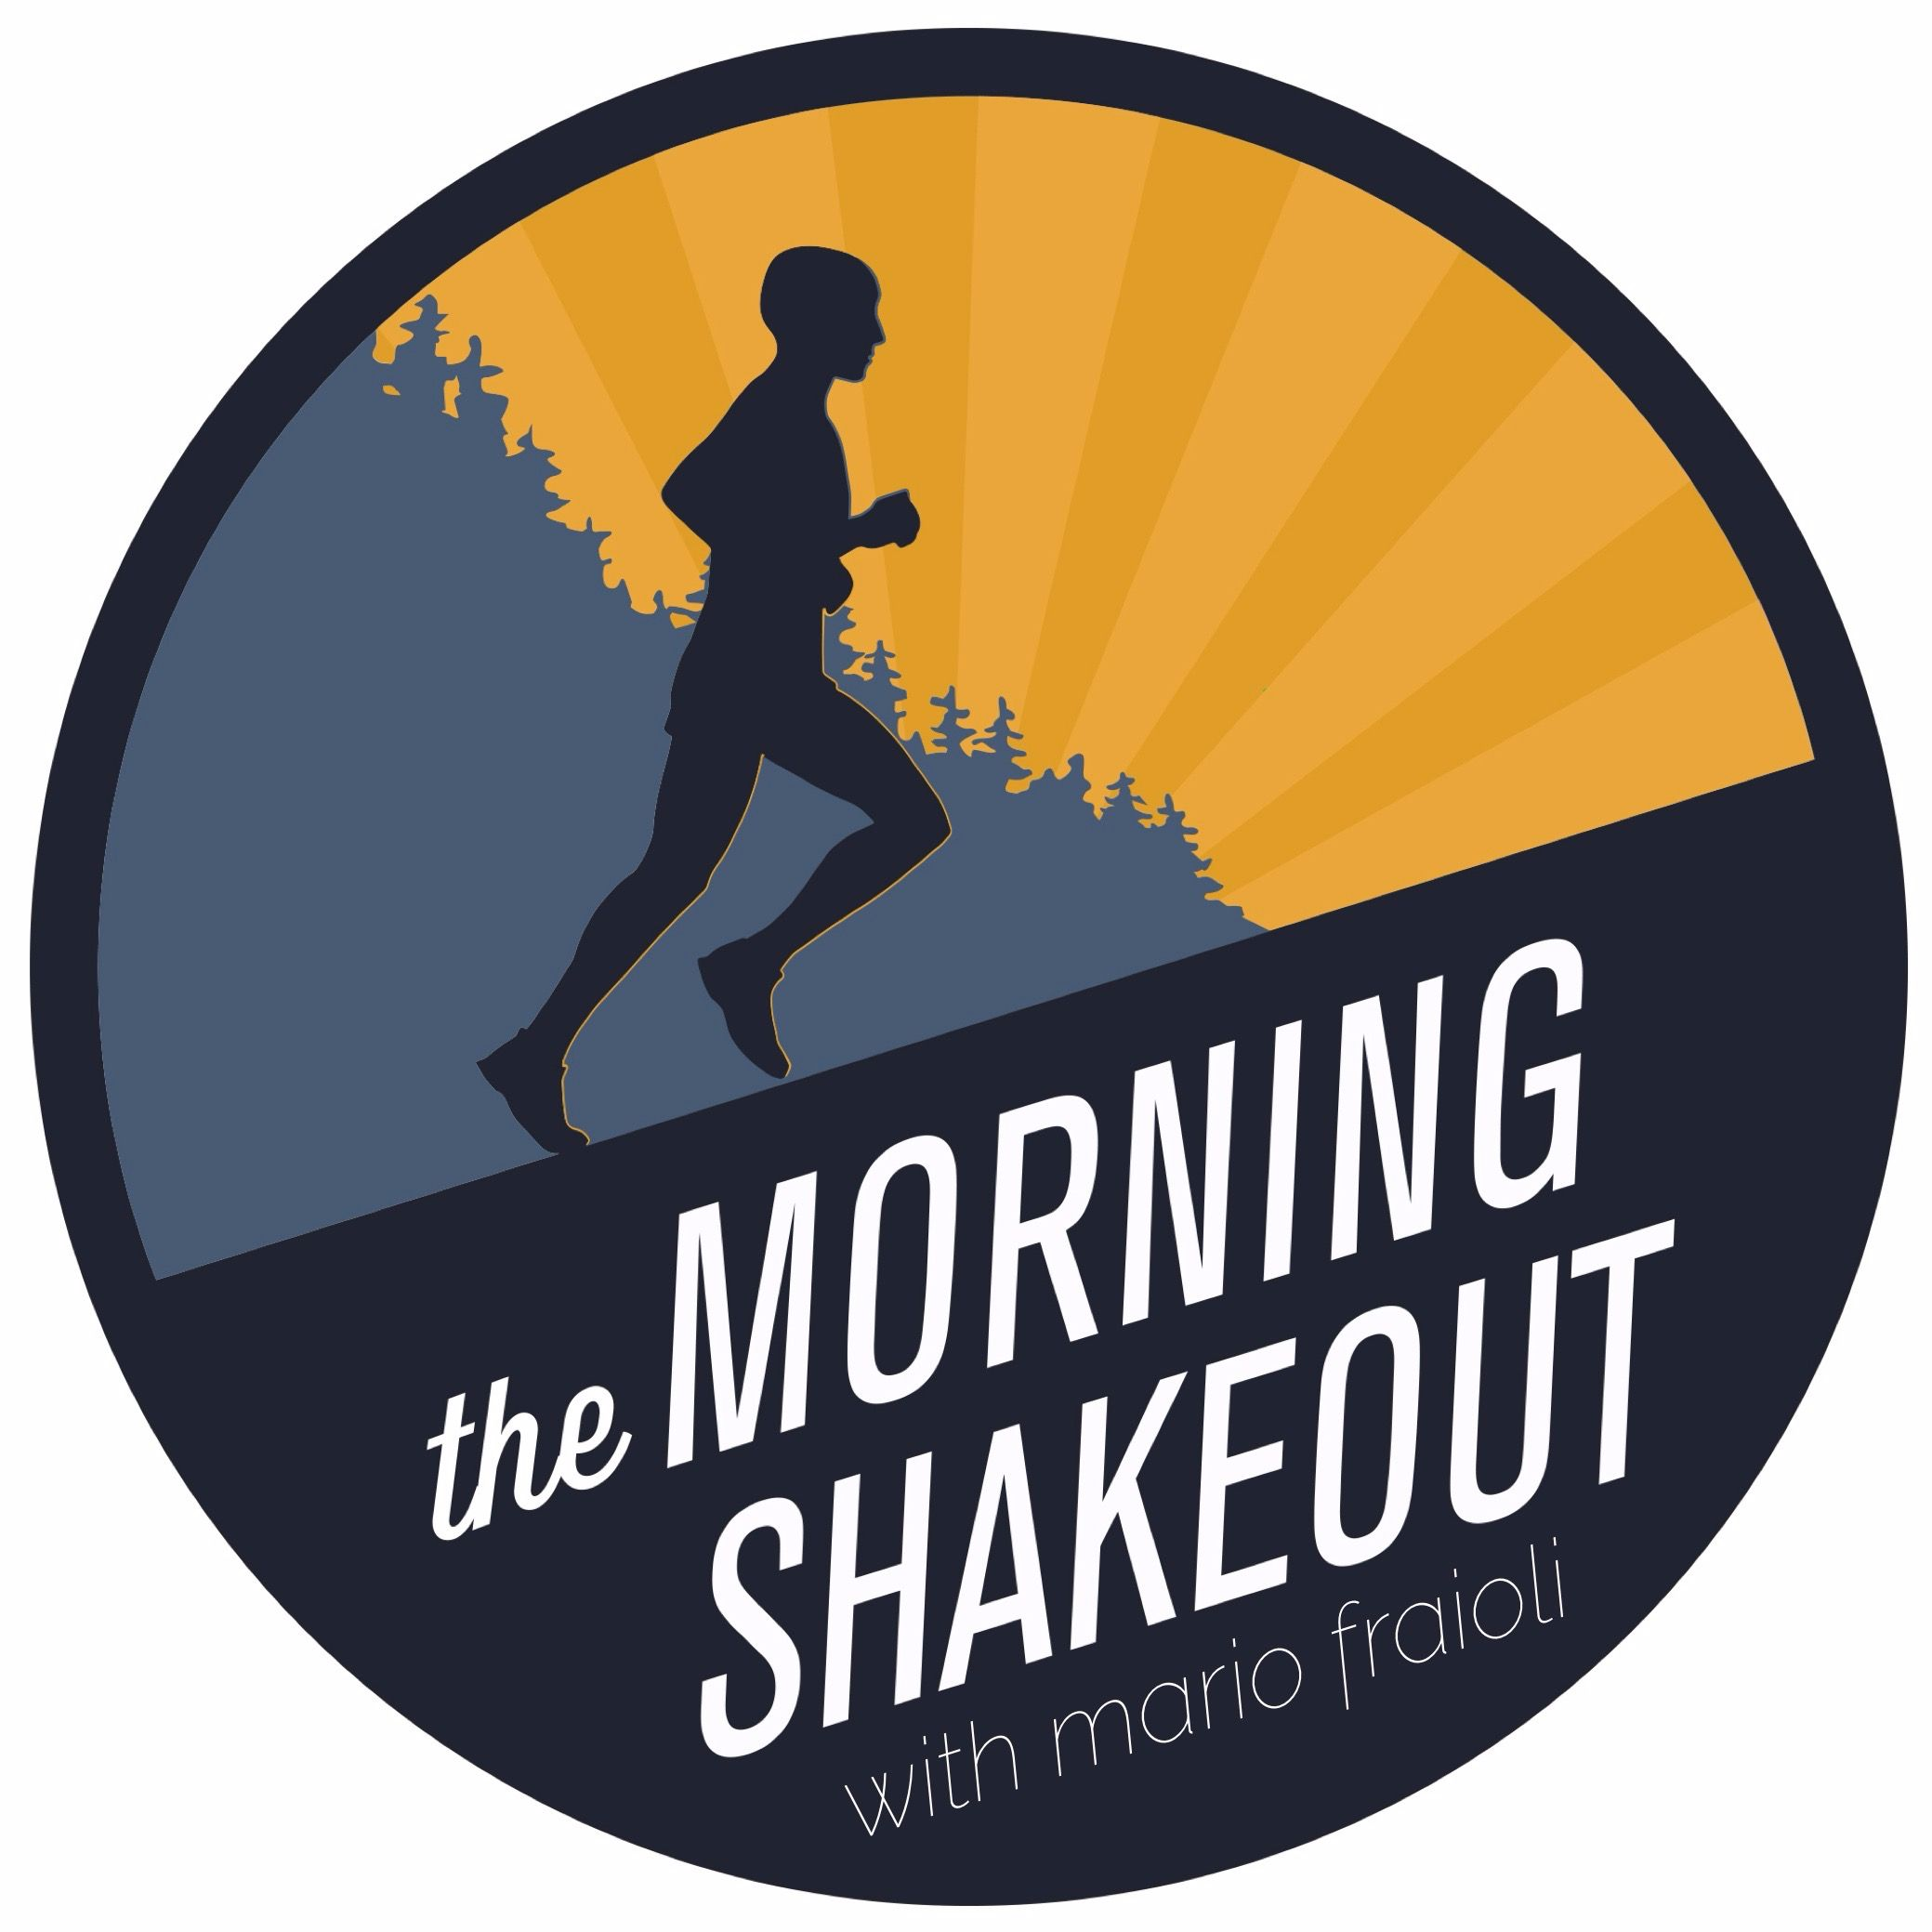 The Morning Shakeout Podcast (for JamesRunsFar.com).jpg